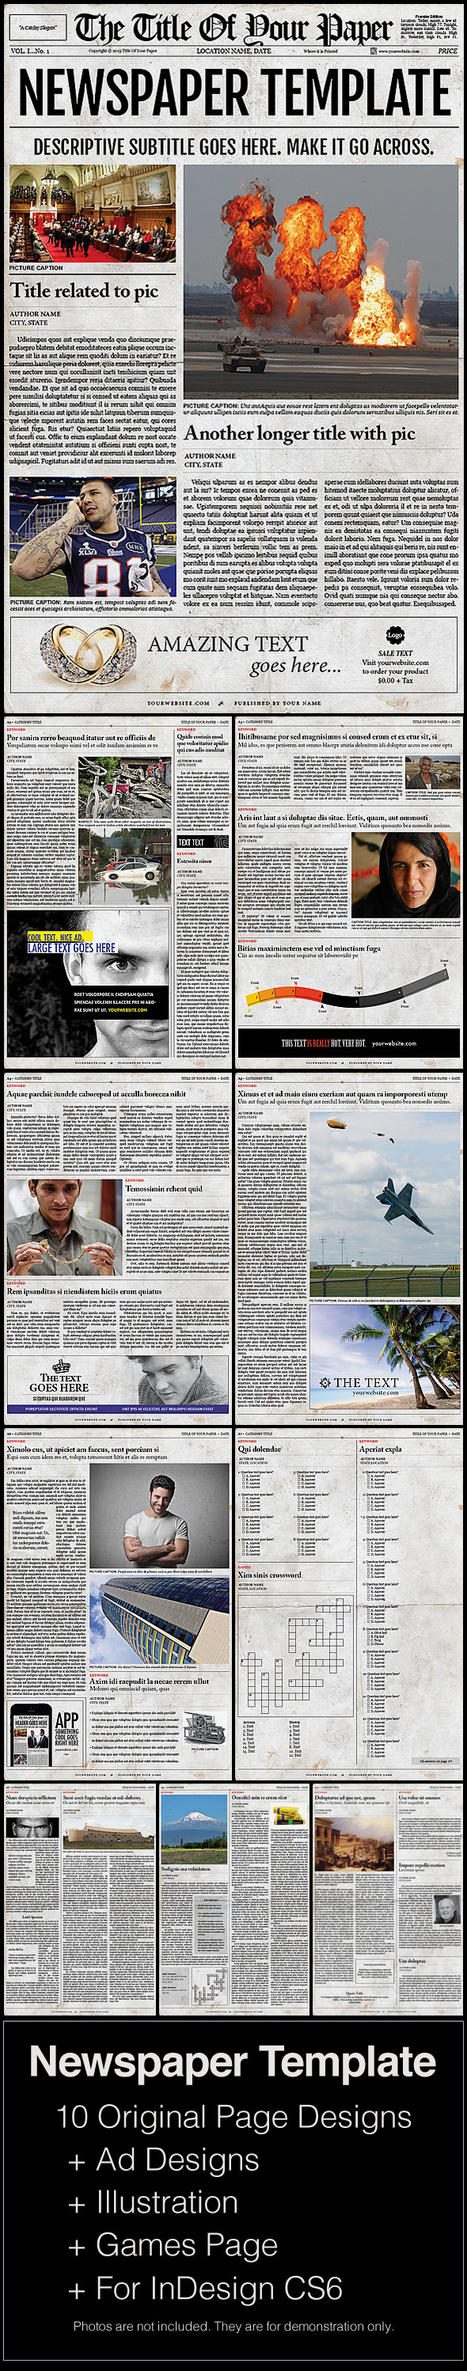 Newspaper Template | Scoop.it